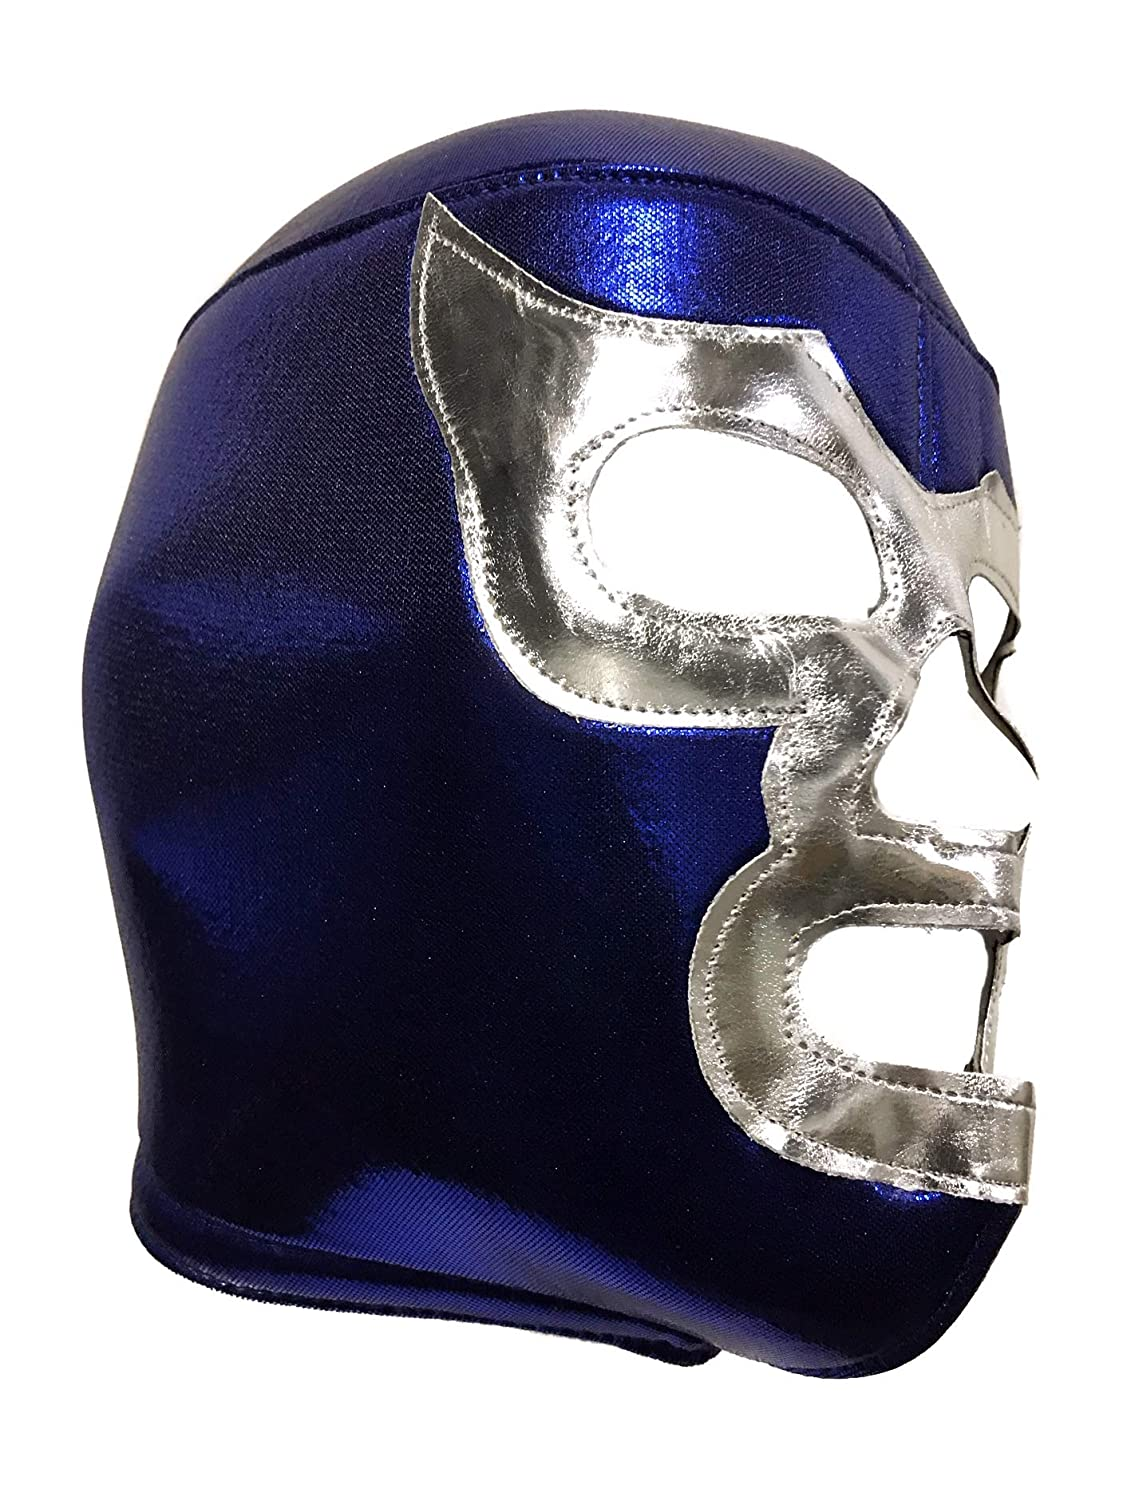 Amazon.com: BLUE DEMON Adult Lucha Libre Wrestling Mask (pro-fit) Costume Wear - Blue: Clothing